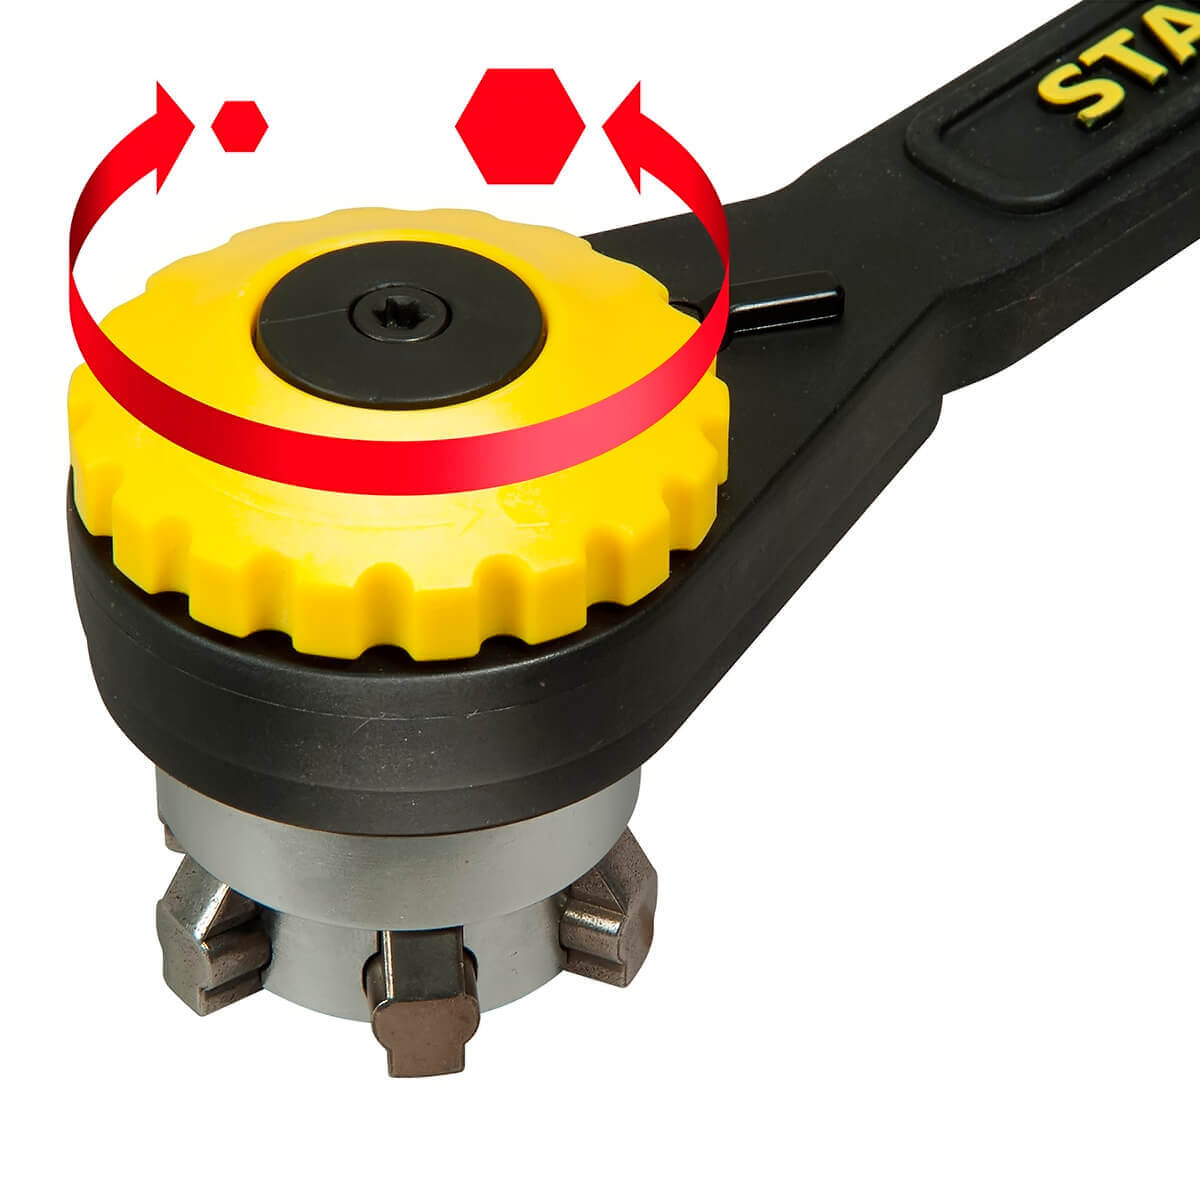 Chave Catraca Múltipla 27 em 1 Twintec 10-24mm STHT72123 Stanley